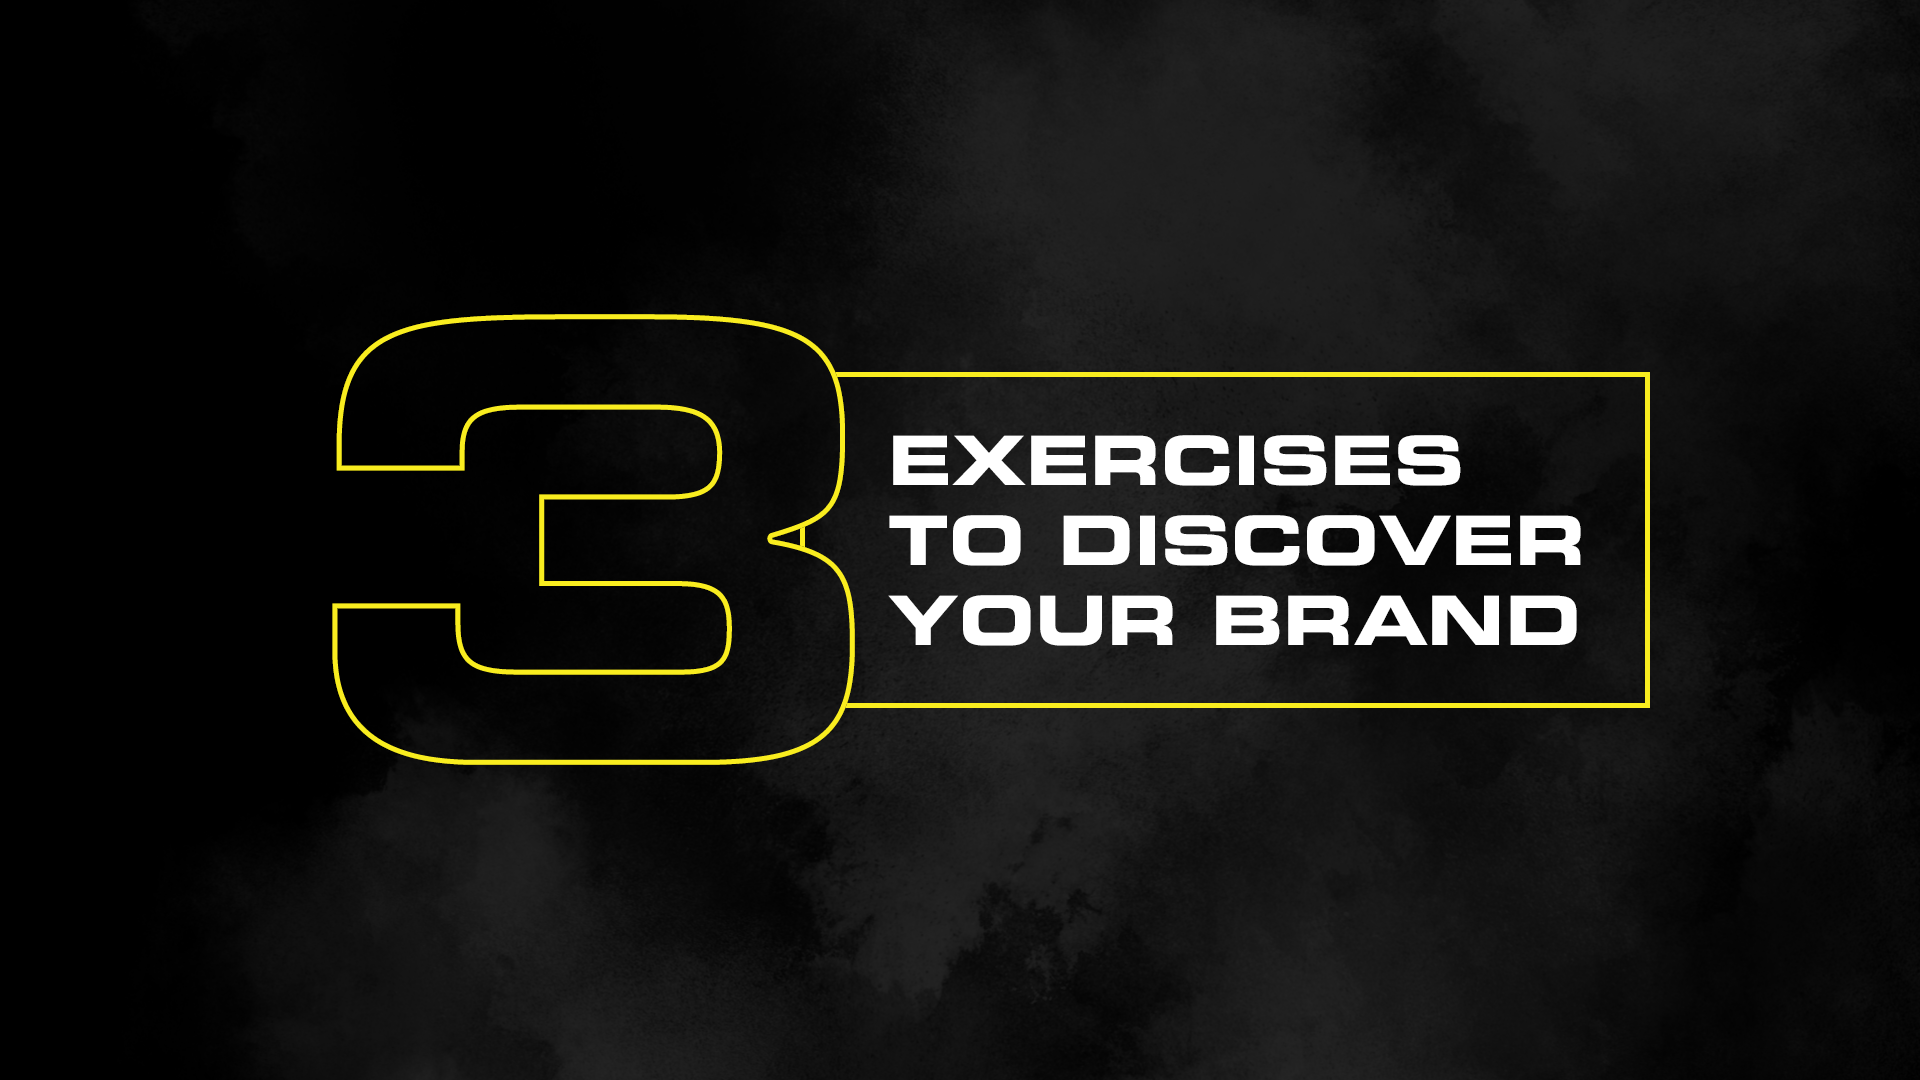 3 Exercises to Discover Your Brand